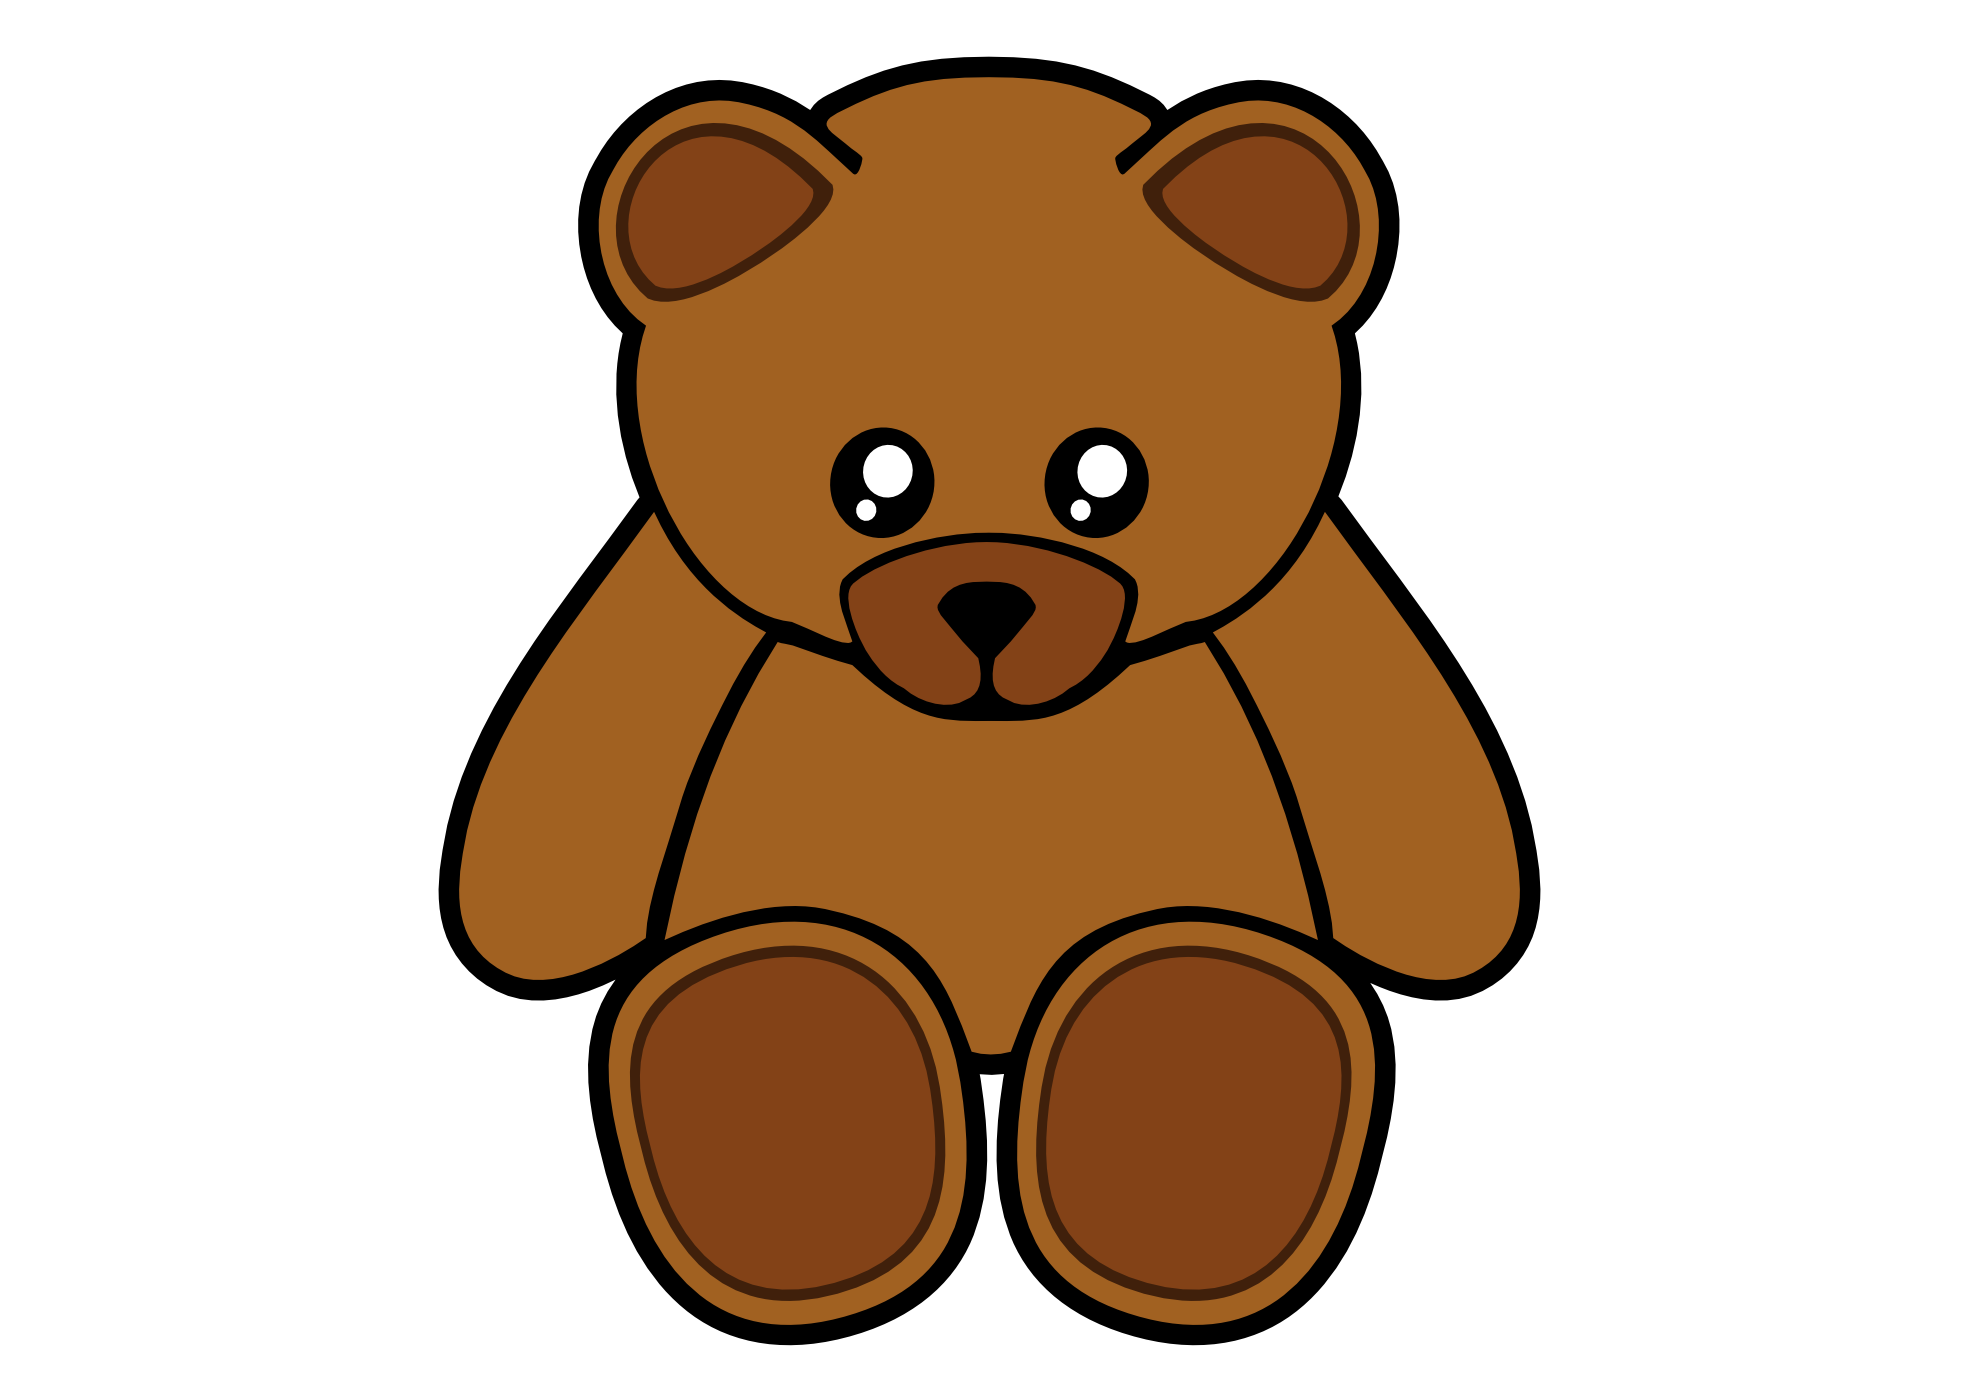 Teddy Bear clipart #9, Download drawings